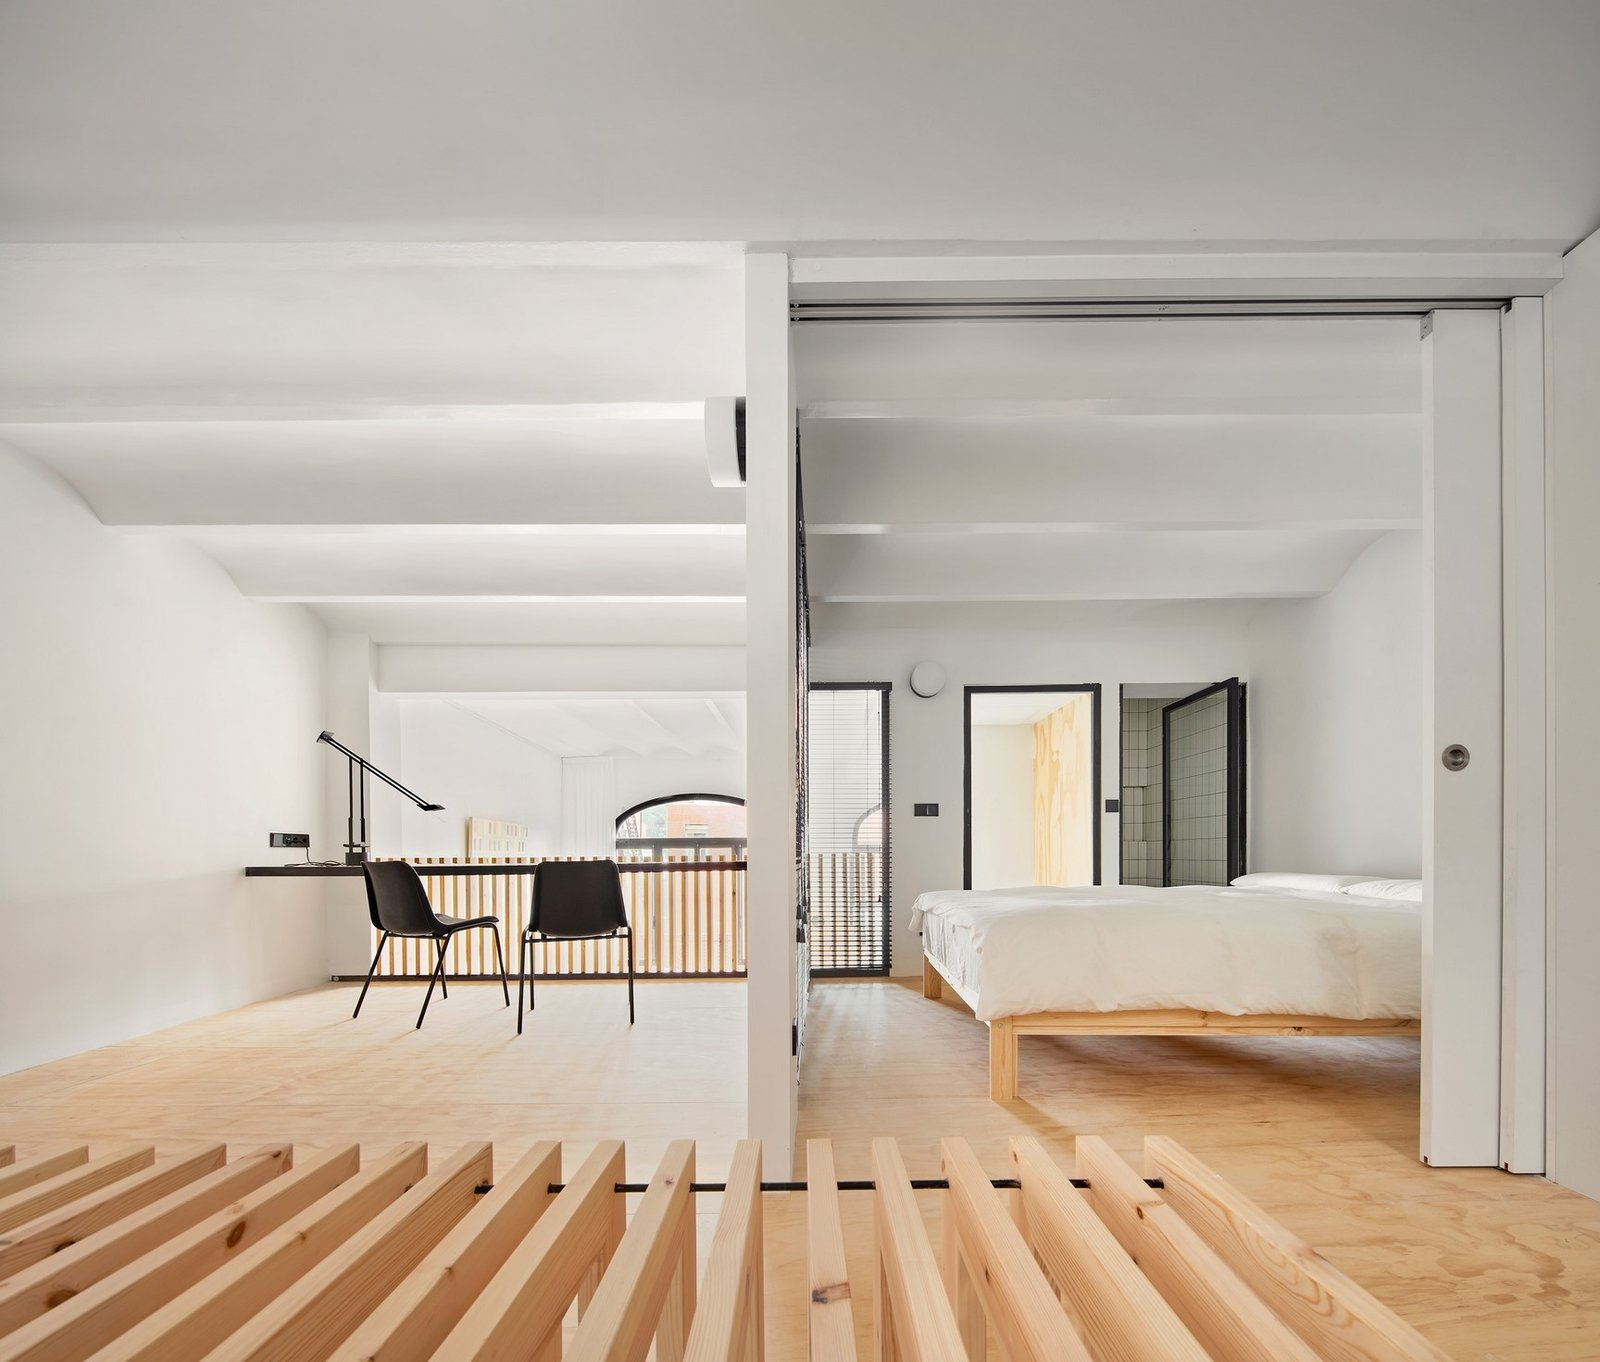 Bedroom, Lamps, Accent Lighting, Light Hardwood Floor, Bed, Chair, Wall Lighting, and Medium Hardwood Floor Bedroom and studio with wood strips bench  Photos from Yurikago House